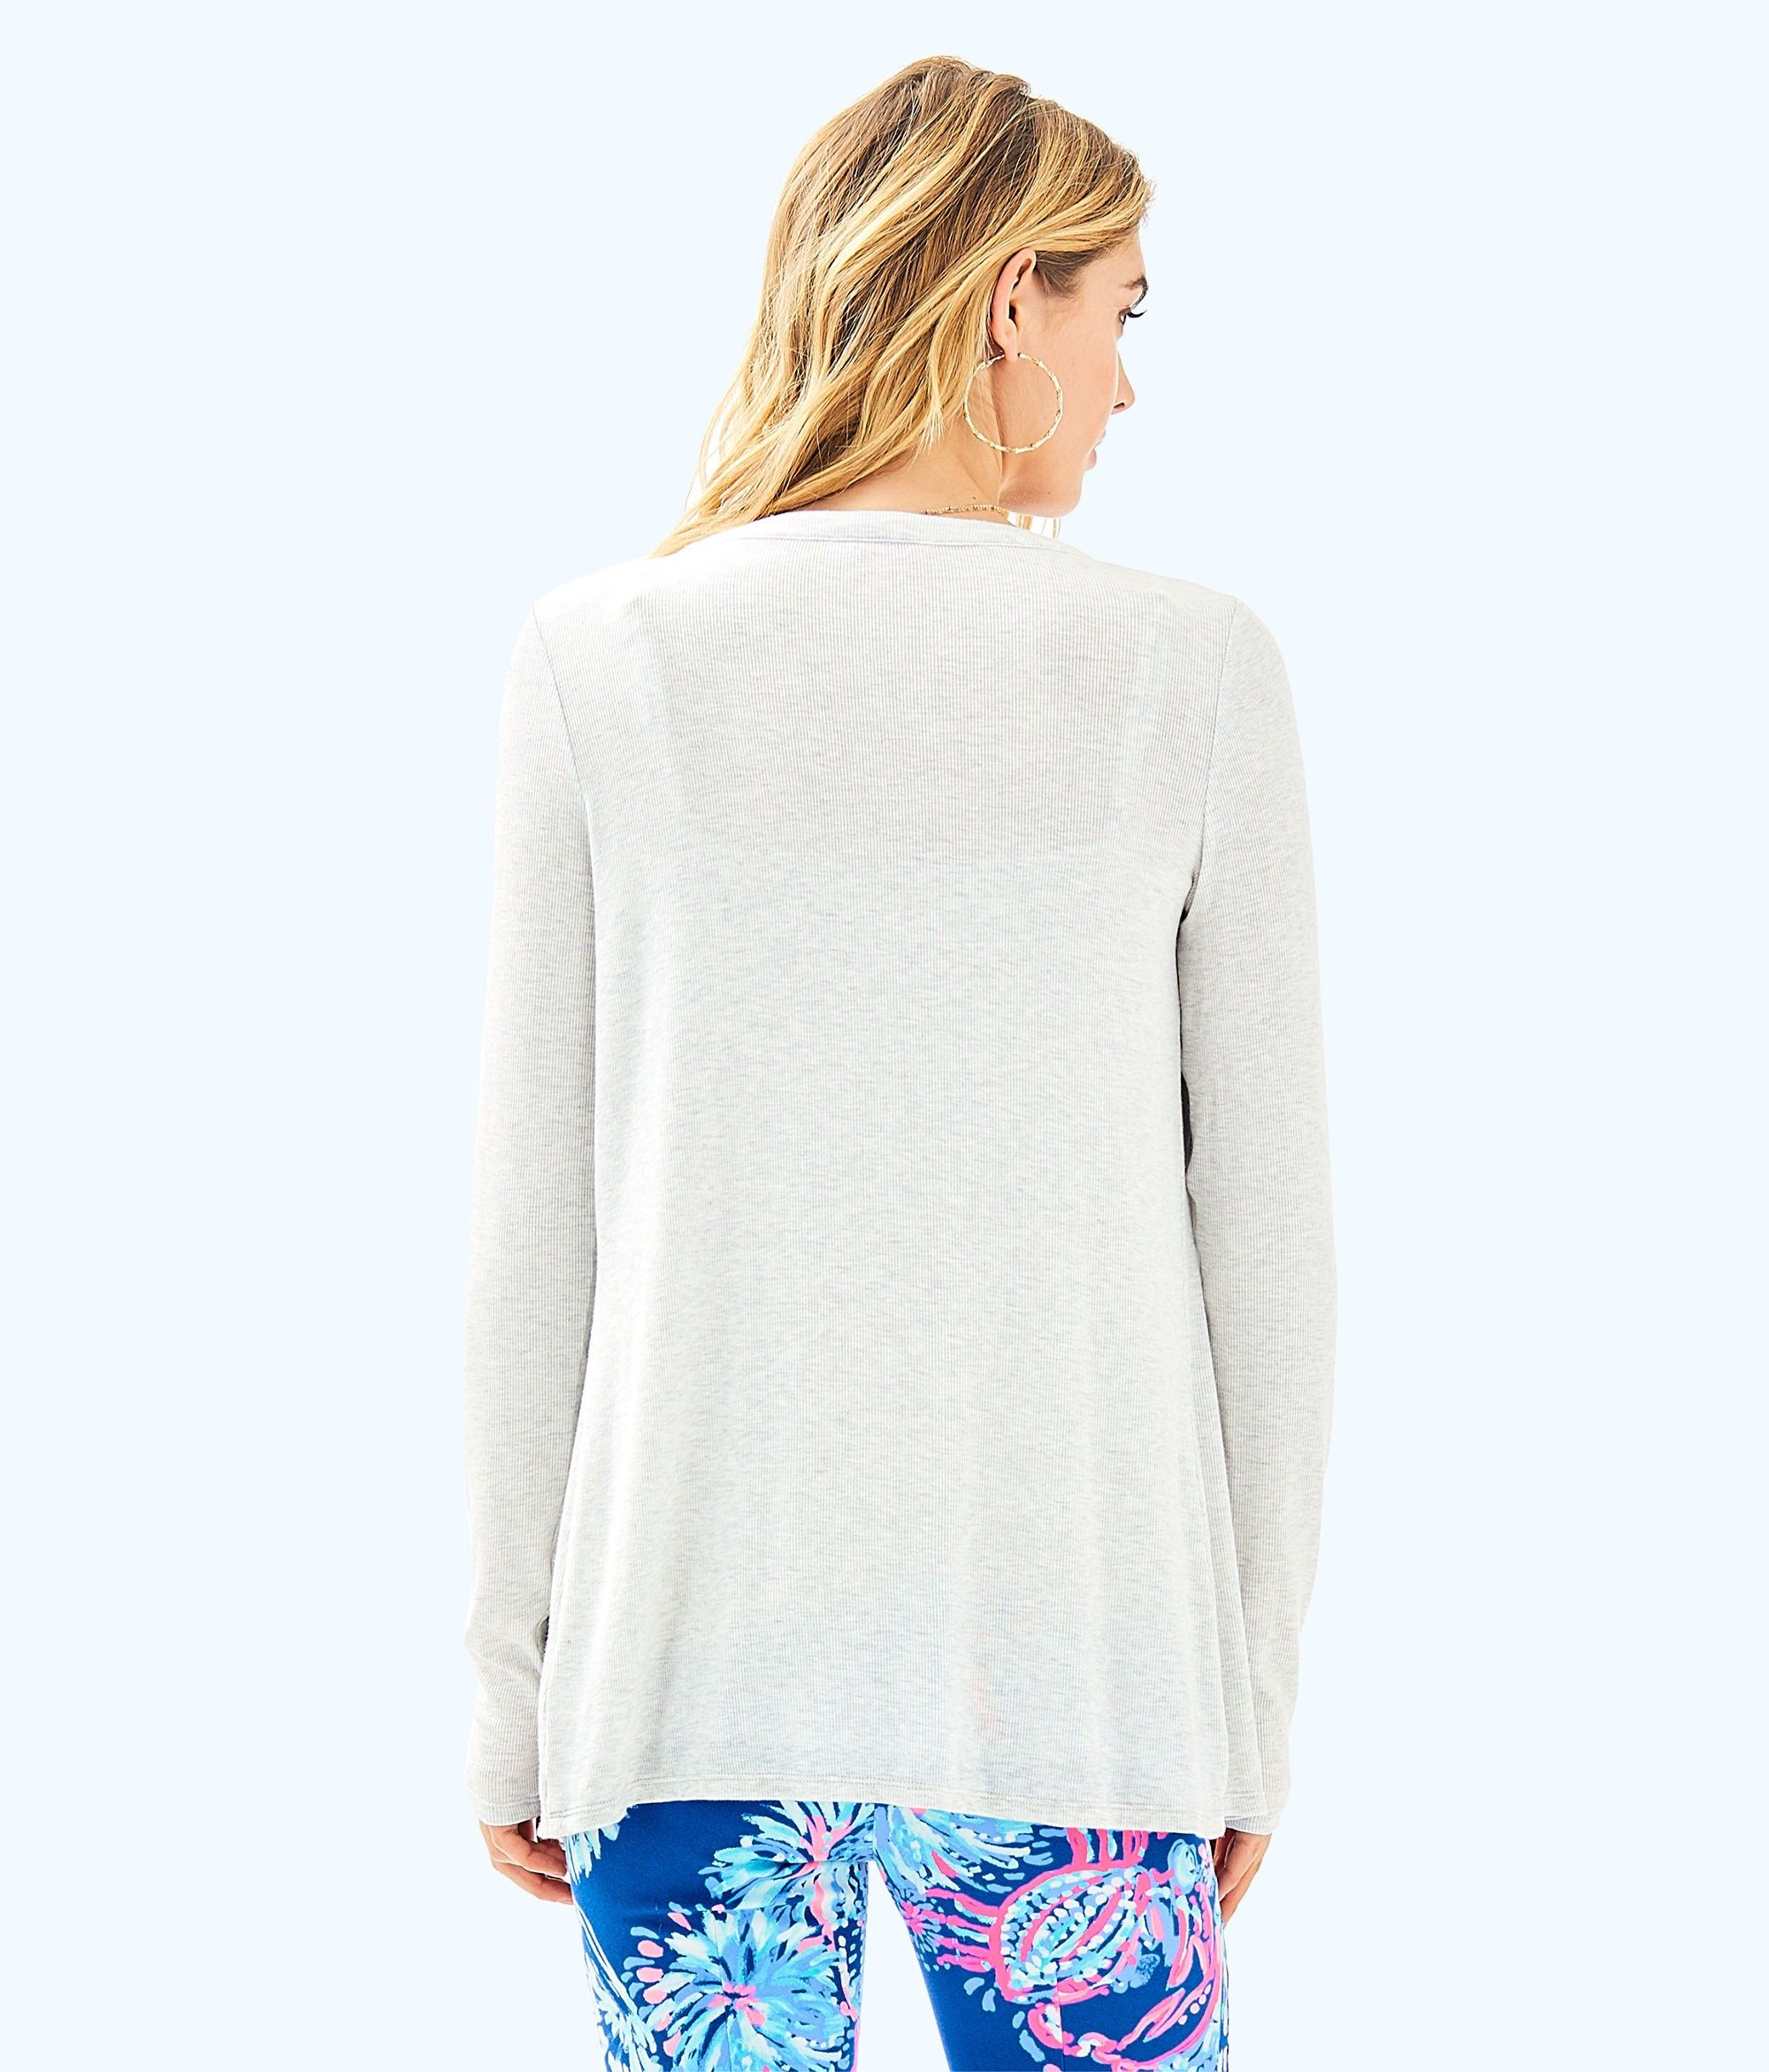 0d1738cb17eb45 Lilly Pulitzer Lorne Set - XXS | Products | Lilly pulitzer, Tops ...